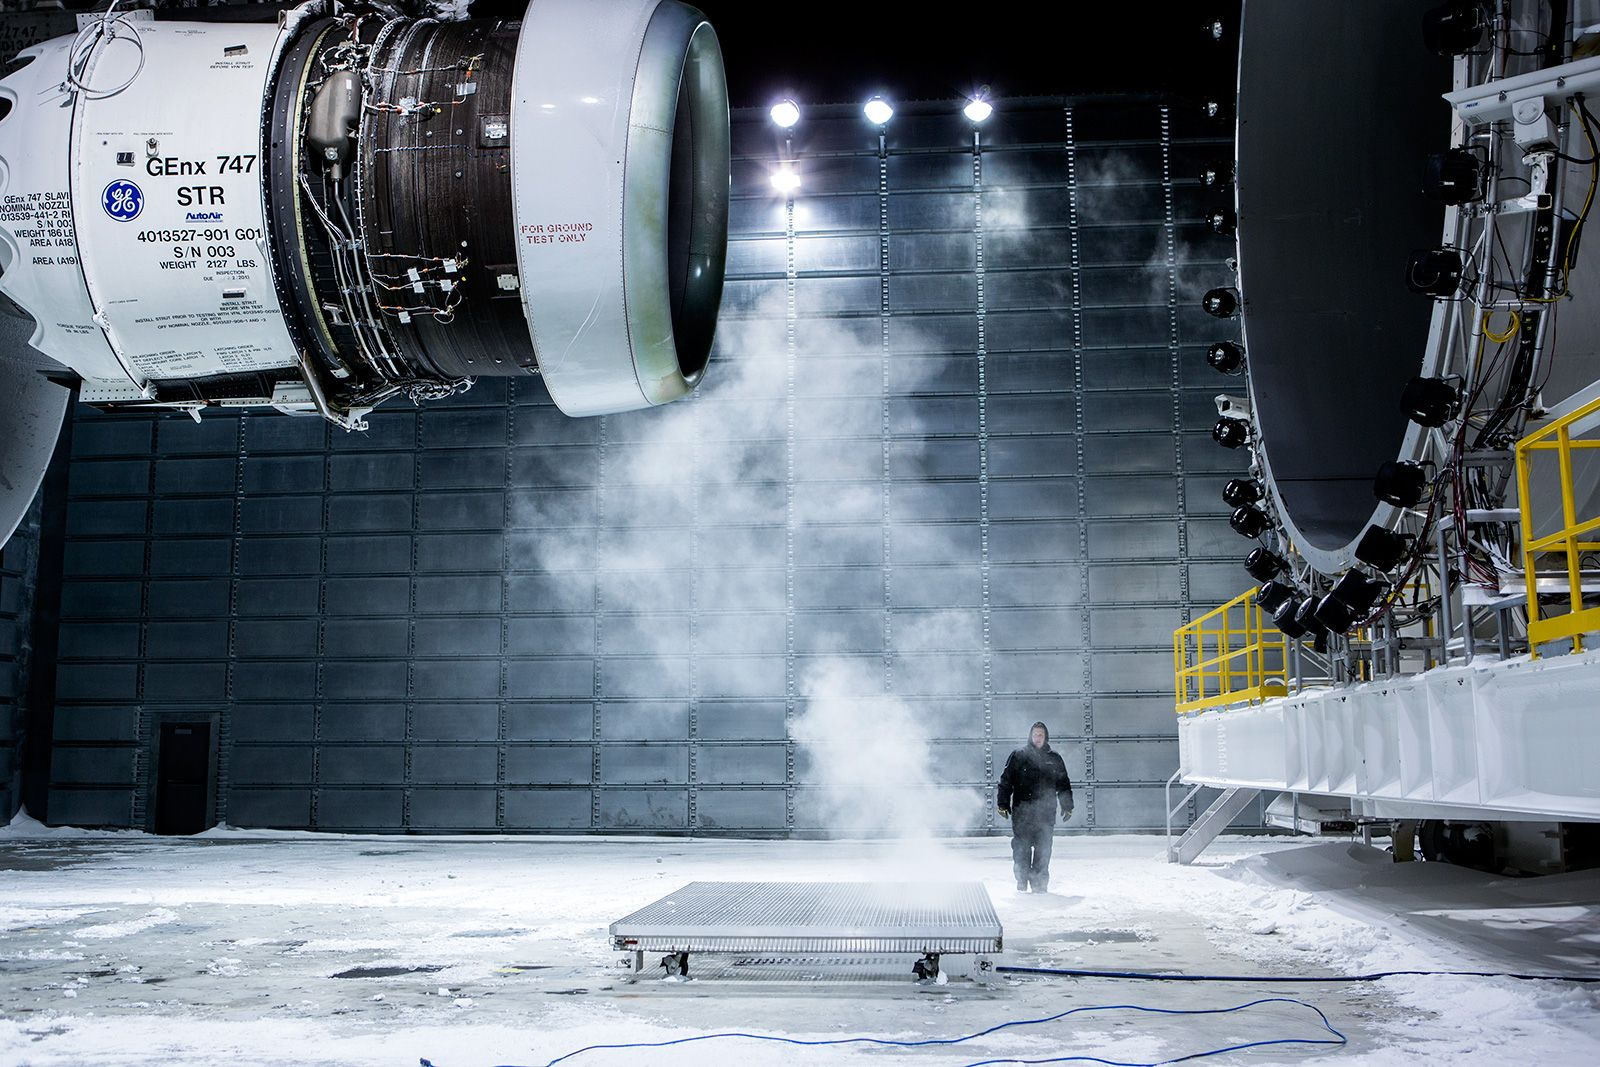 Is Your Jet Engine Linked In? Connecting Minds and Machines to Drive Efficiency